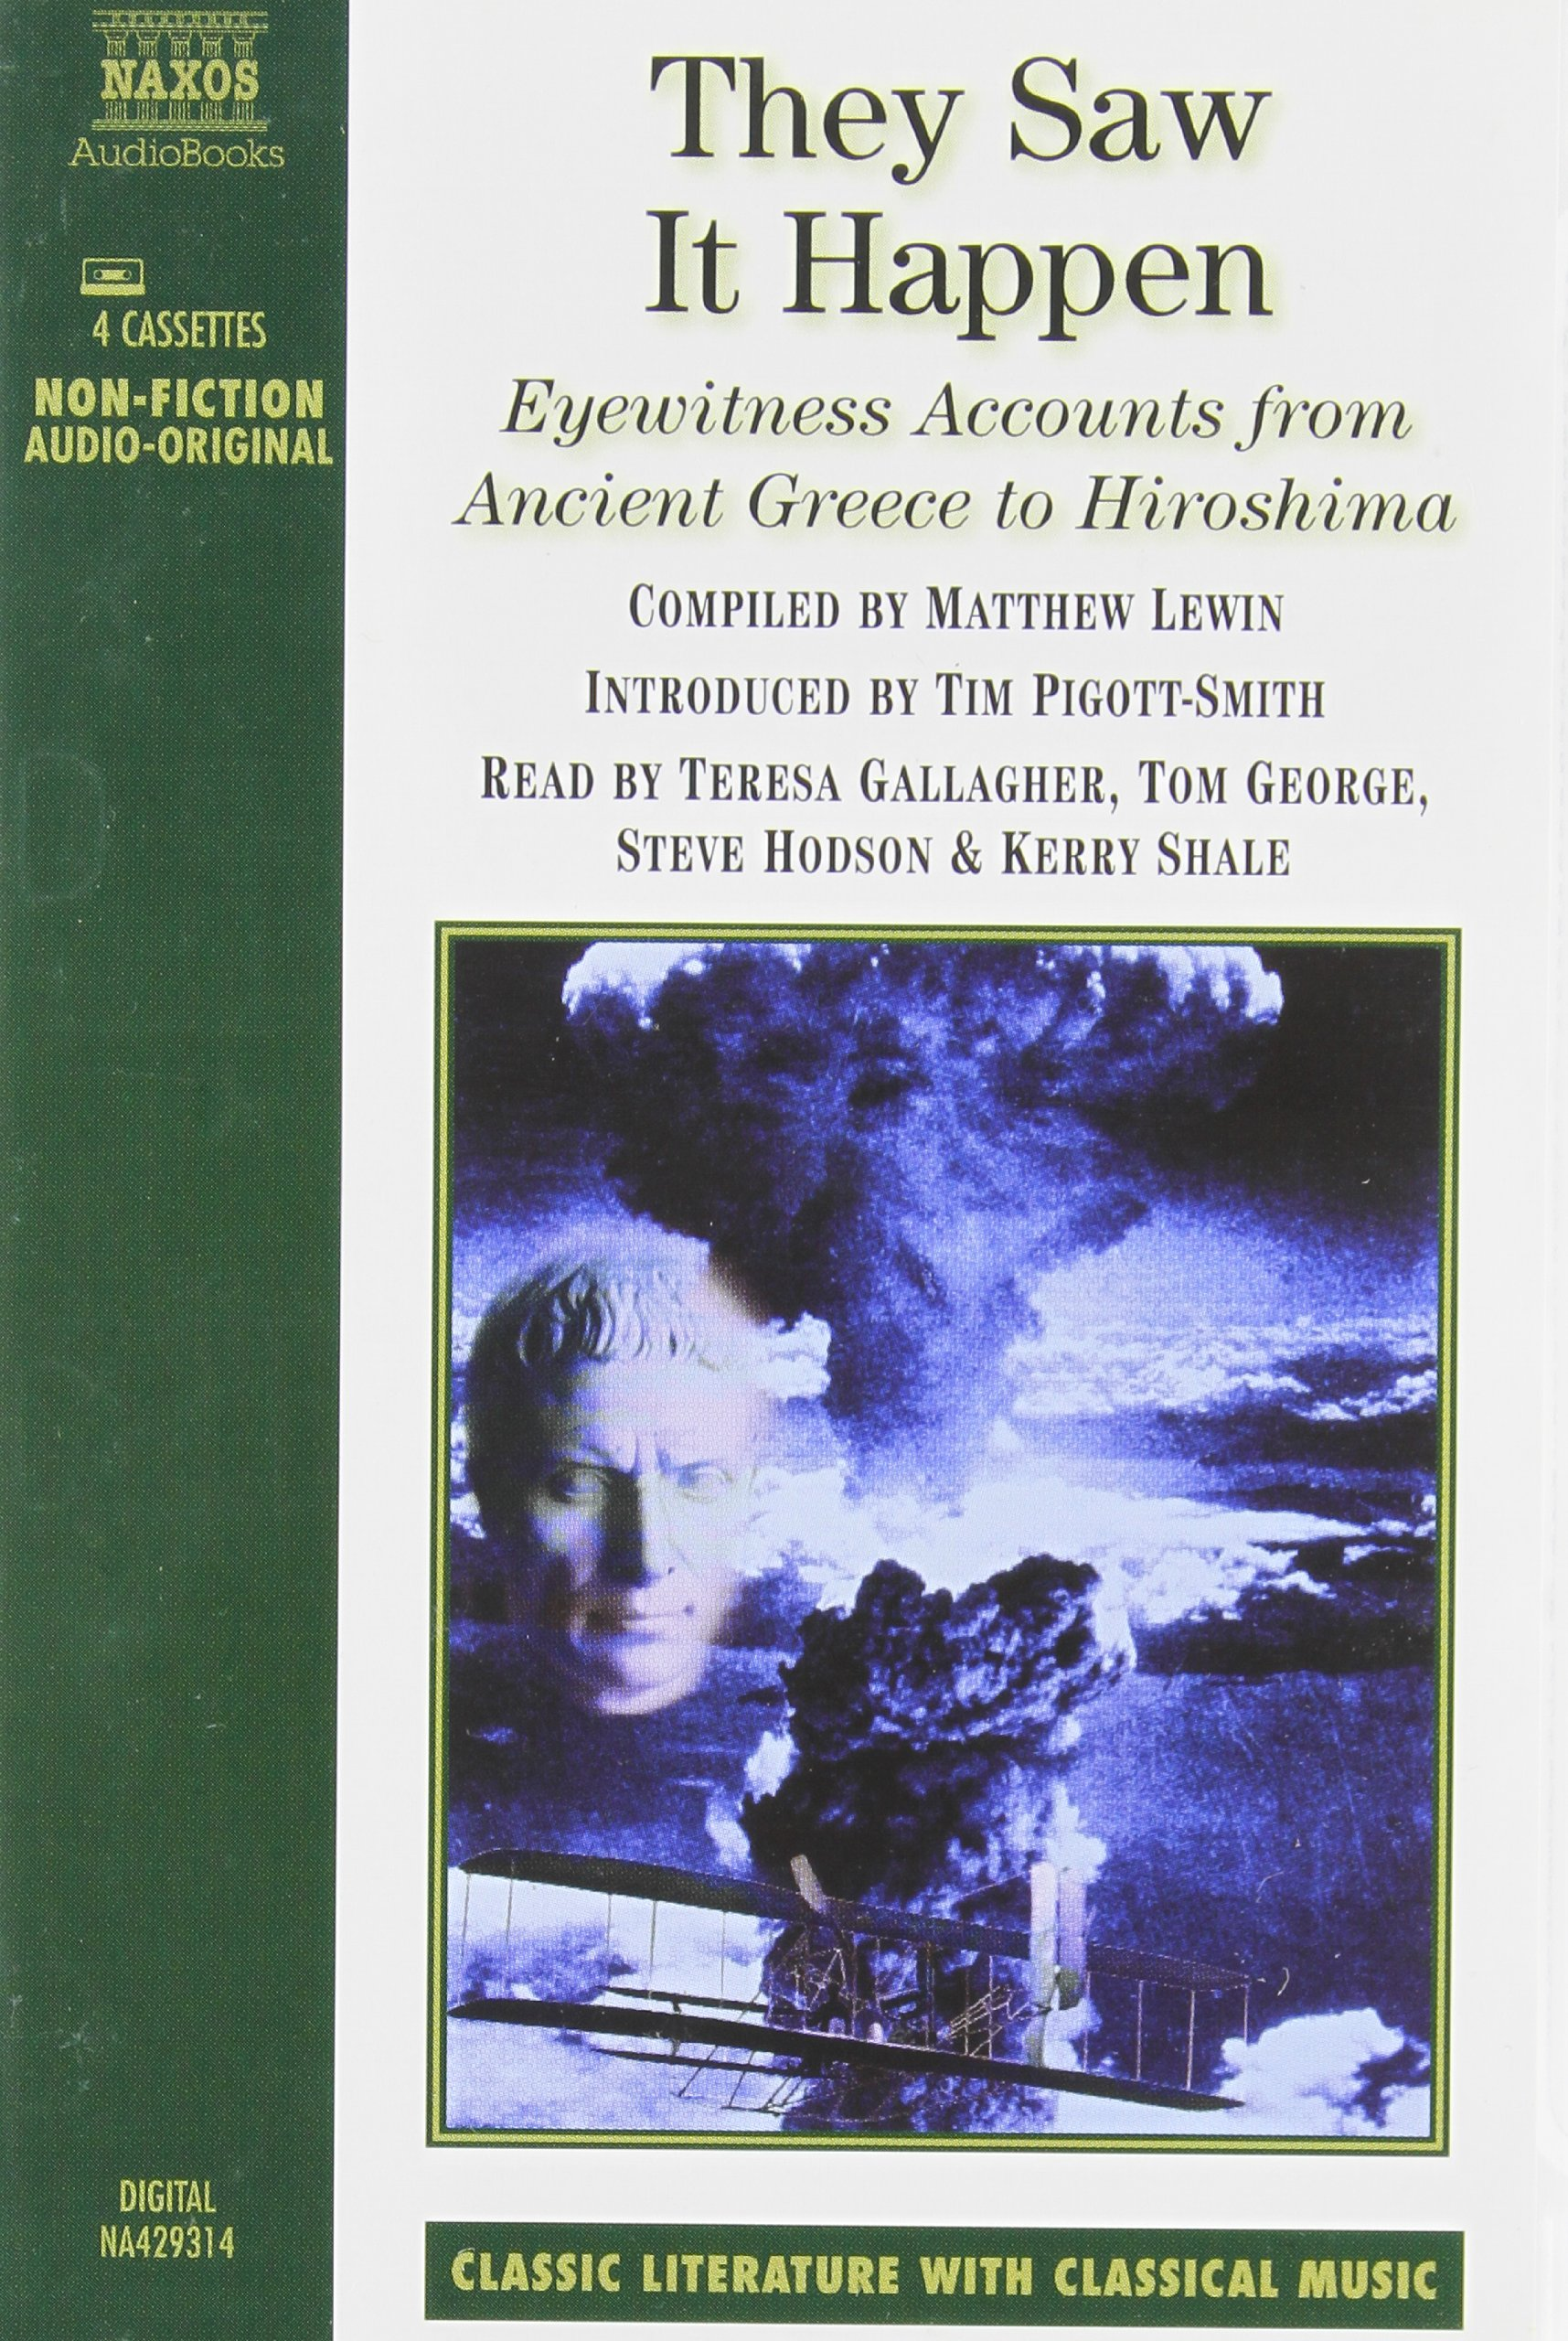 They Saw It Happen: Eyewitness Accounts from Ancient Greece to Hiroshima pdf